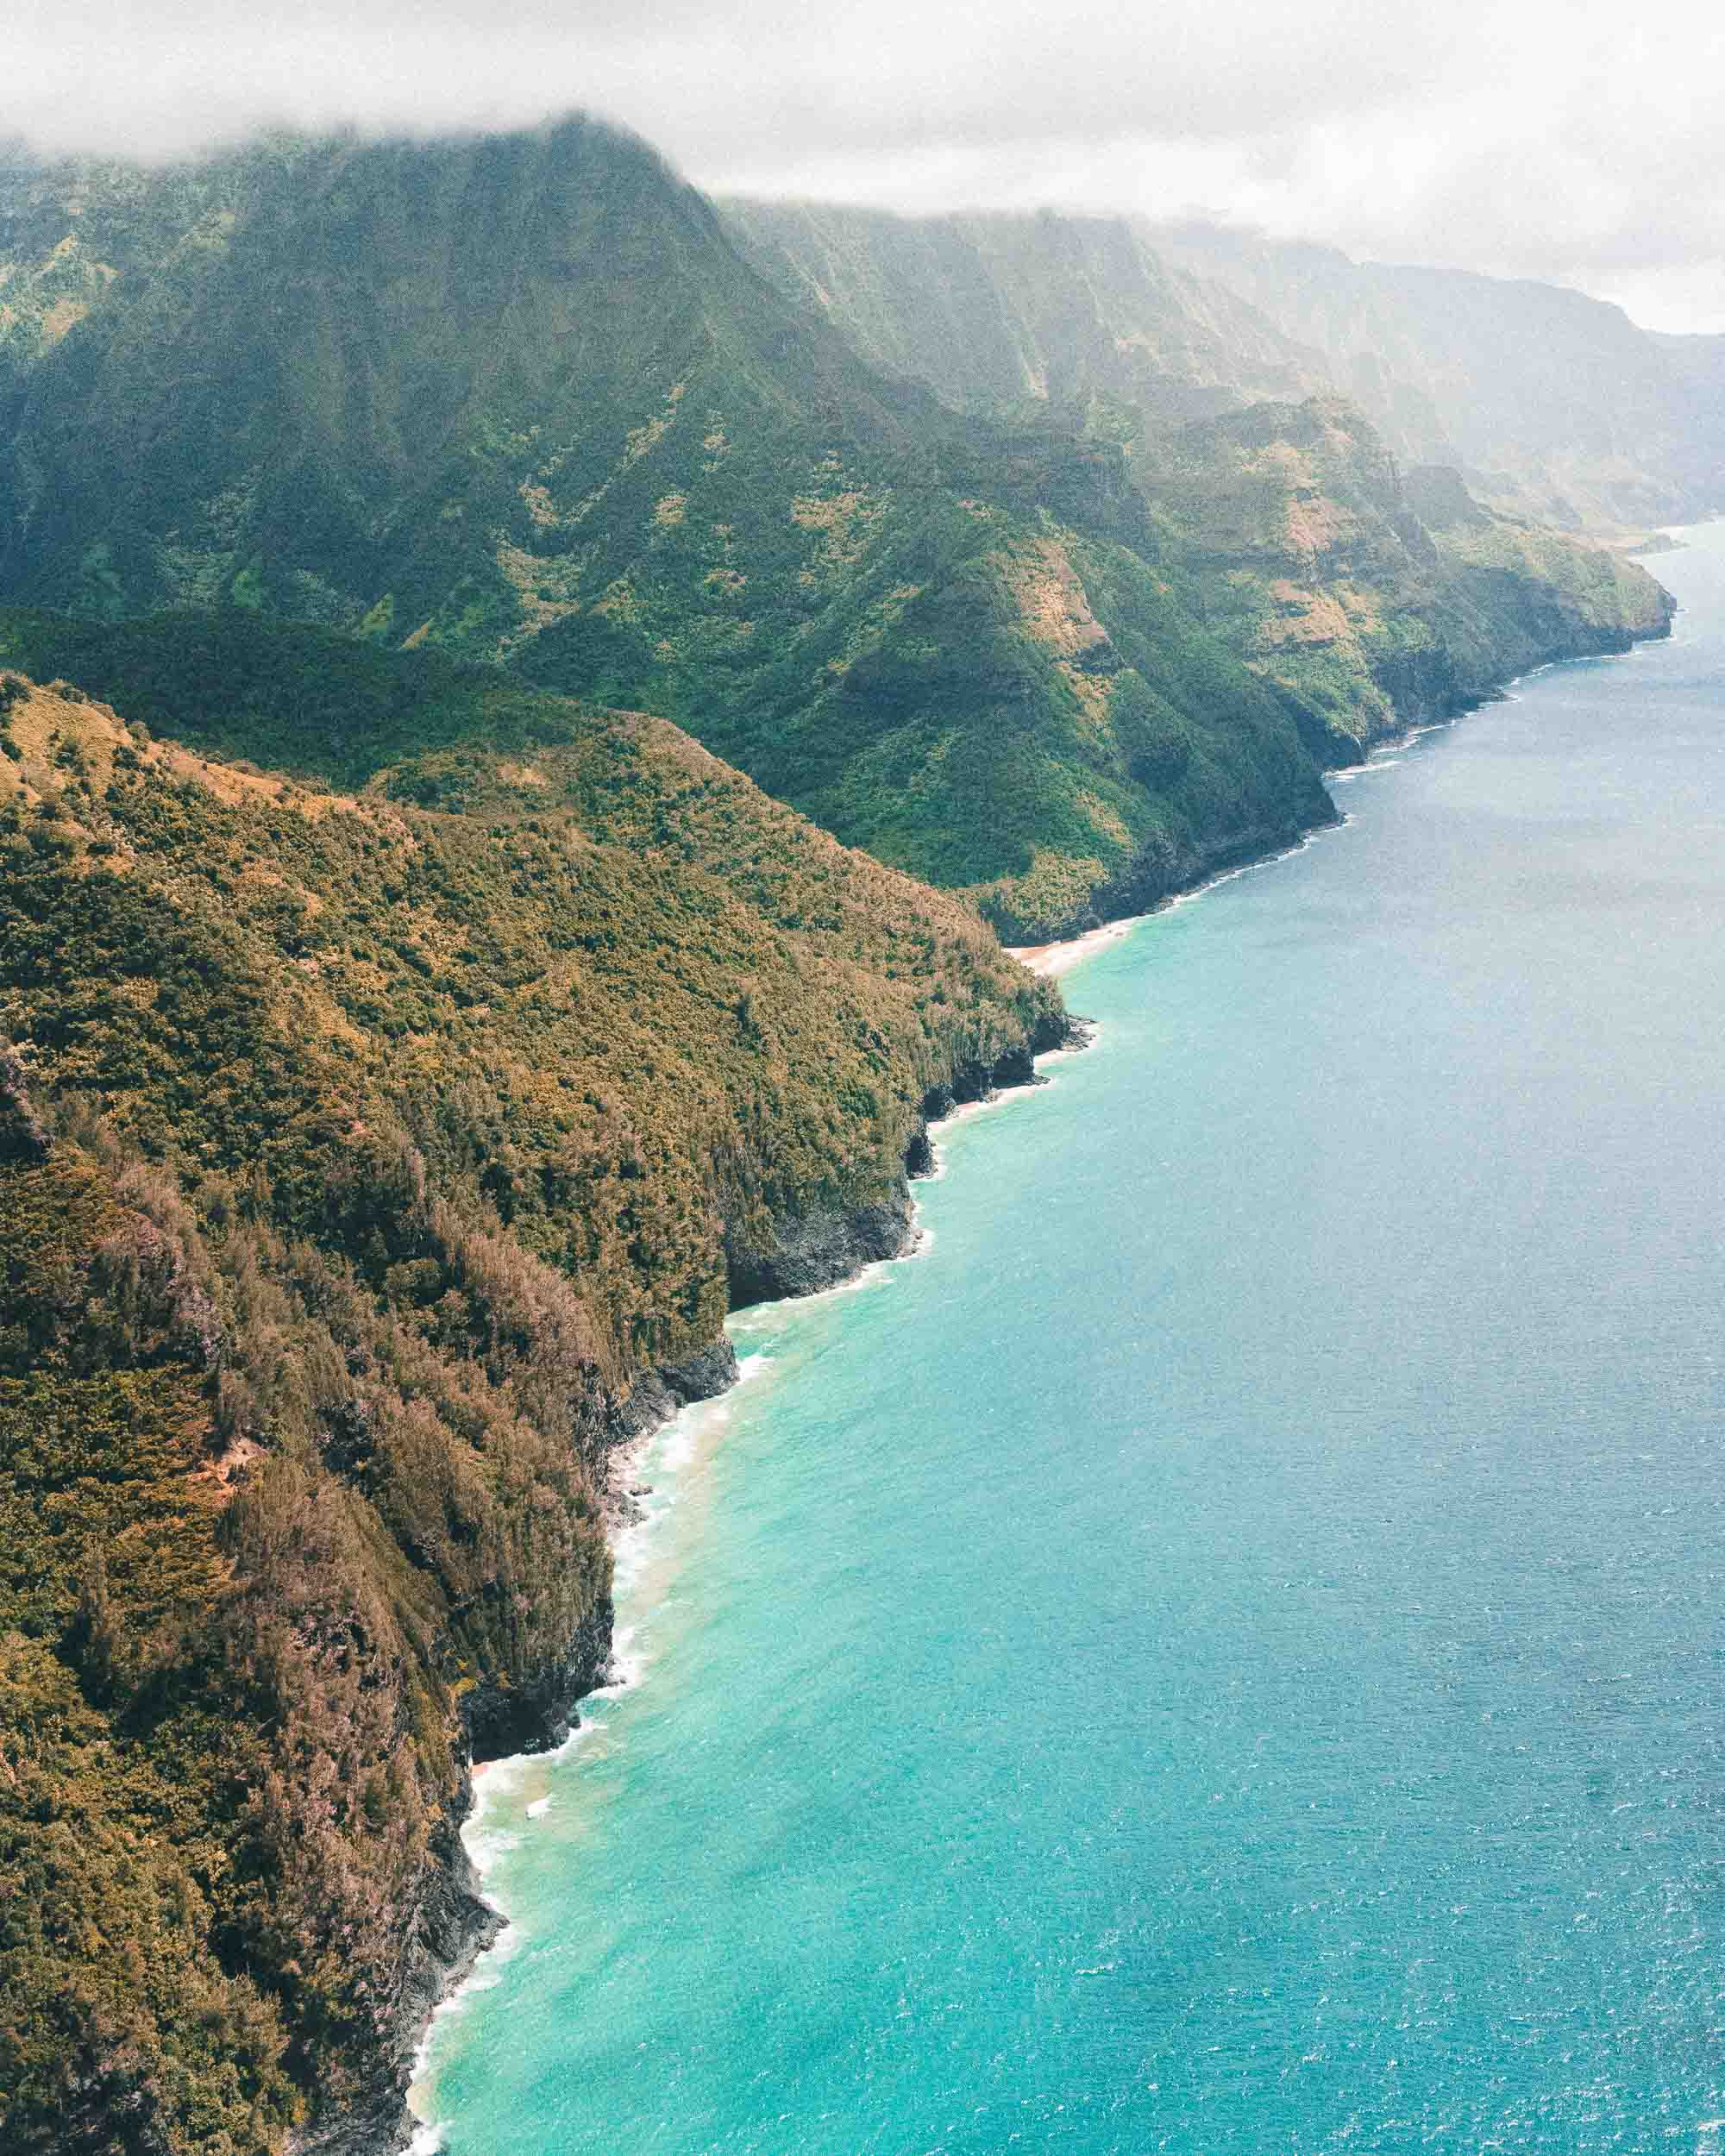 The Na Pali coast from a Helicopter Kauai Travel Guide via Find Us Lost